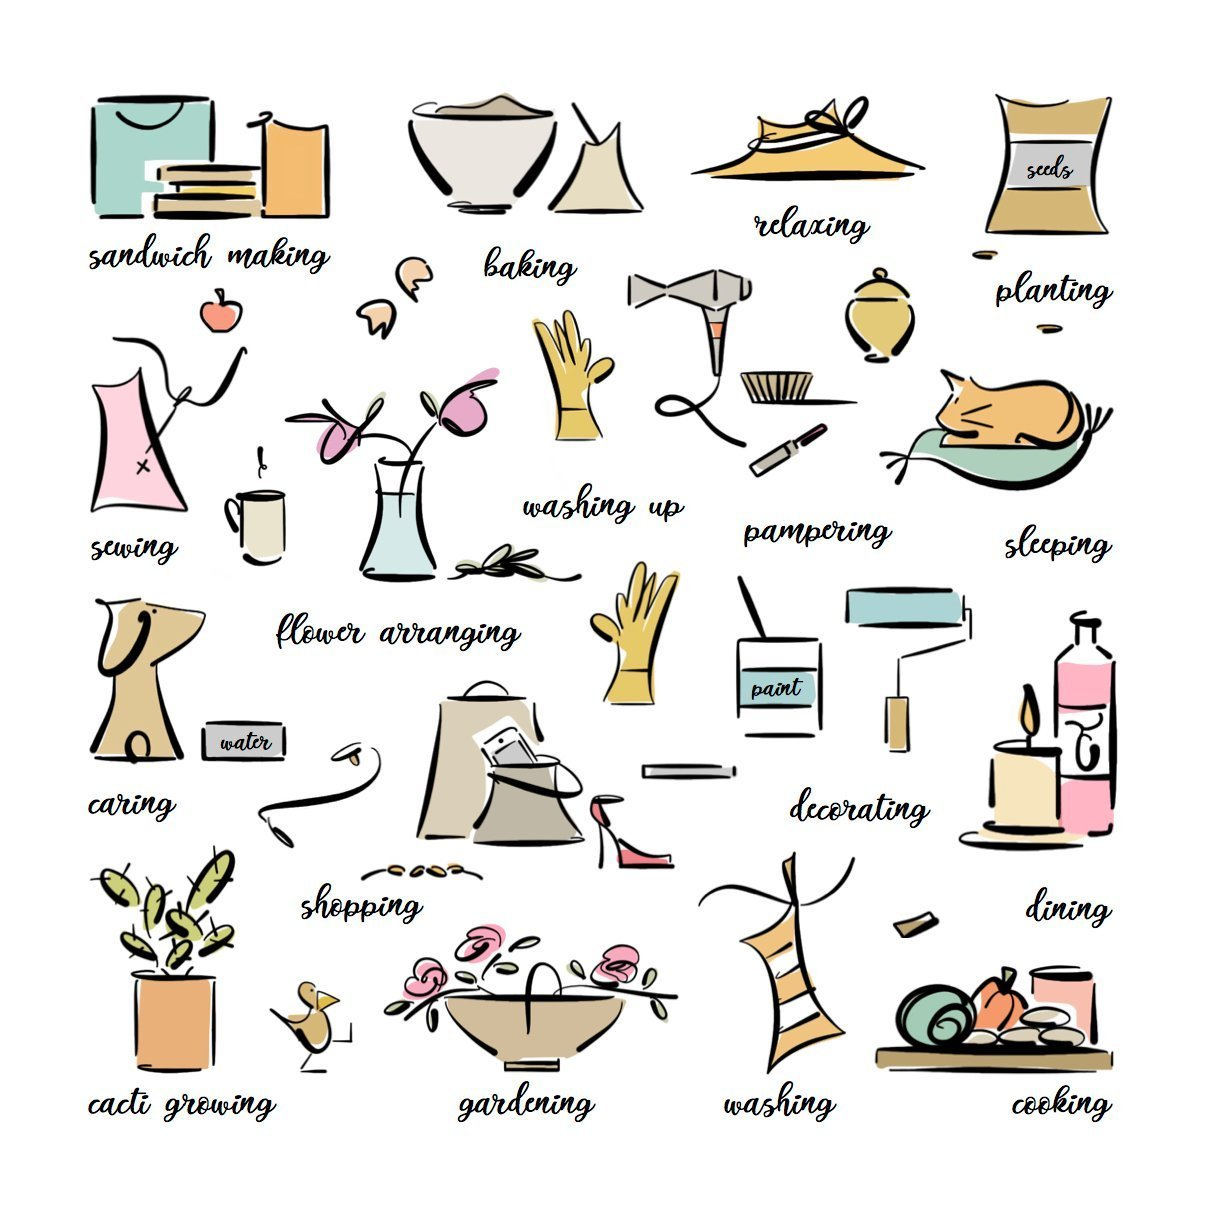 every day activities illustration